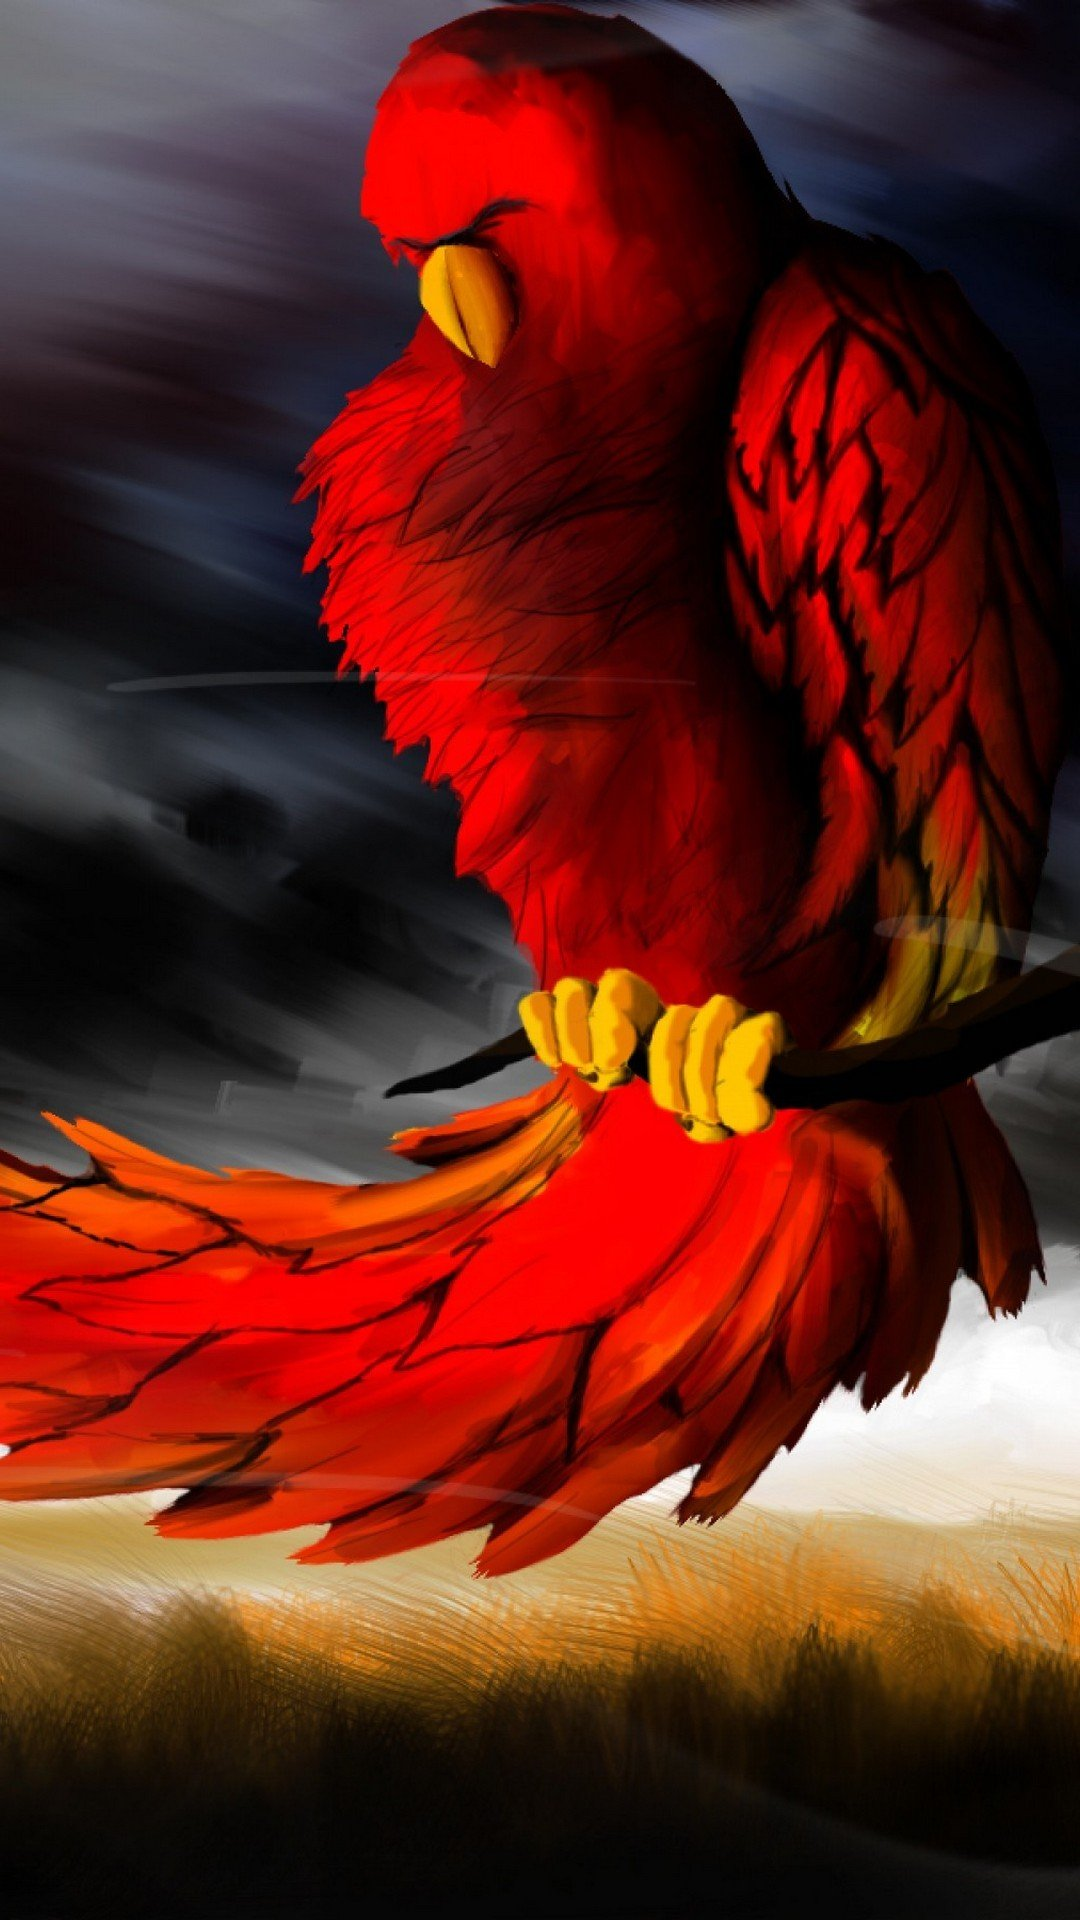 Android Wallpaper Phoenix Bird Images   2019 Android Wallpapers 1080x1920